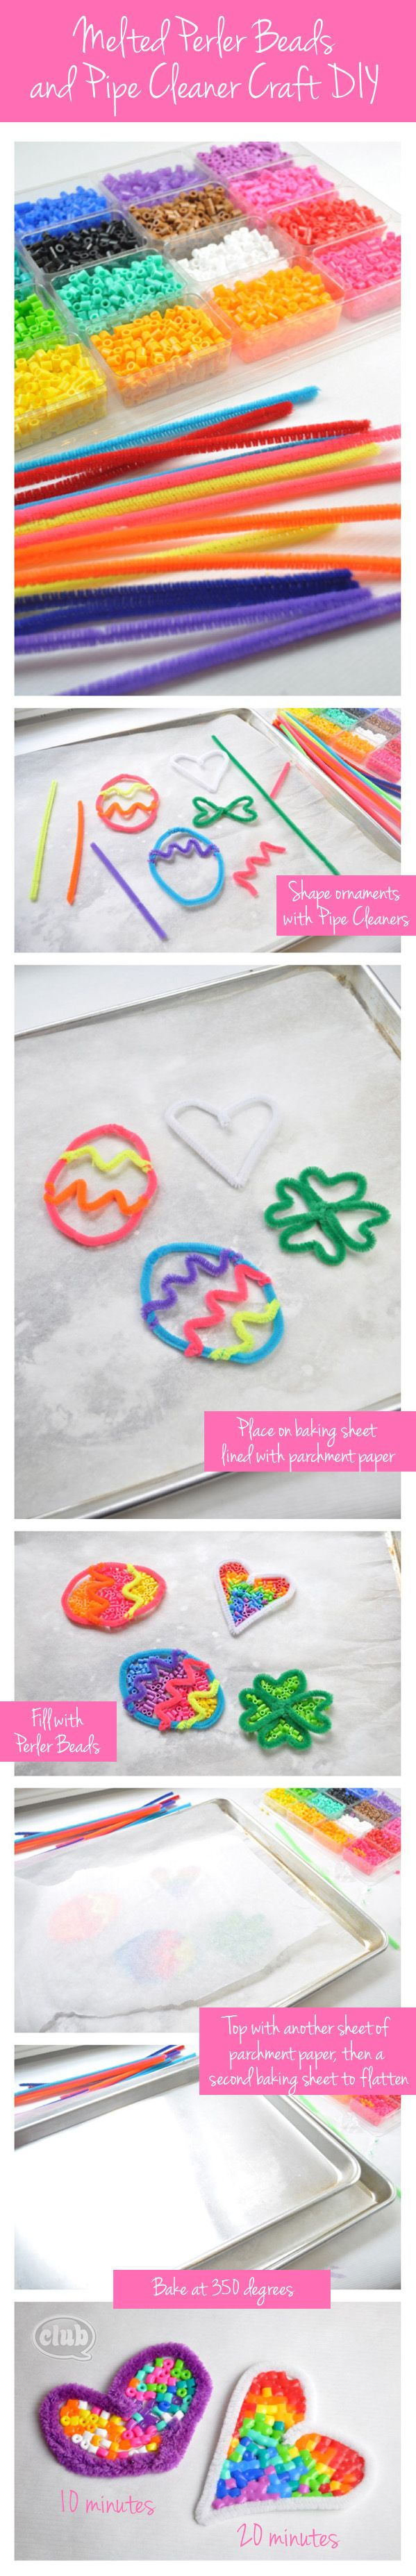 Melted perler bead and pipe cleaner ornament DIY - shape your own designs, fill with beads and melt. Love the colors!